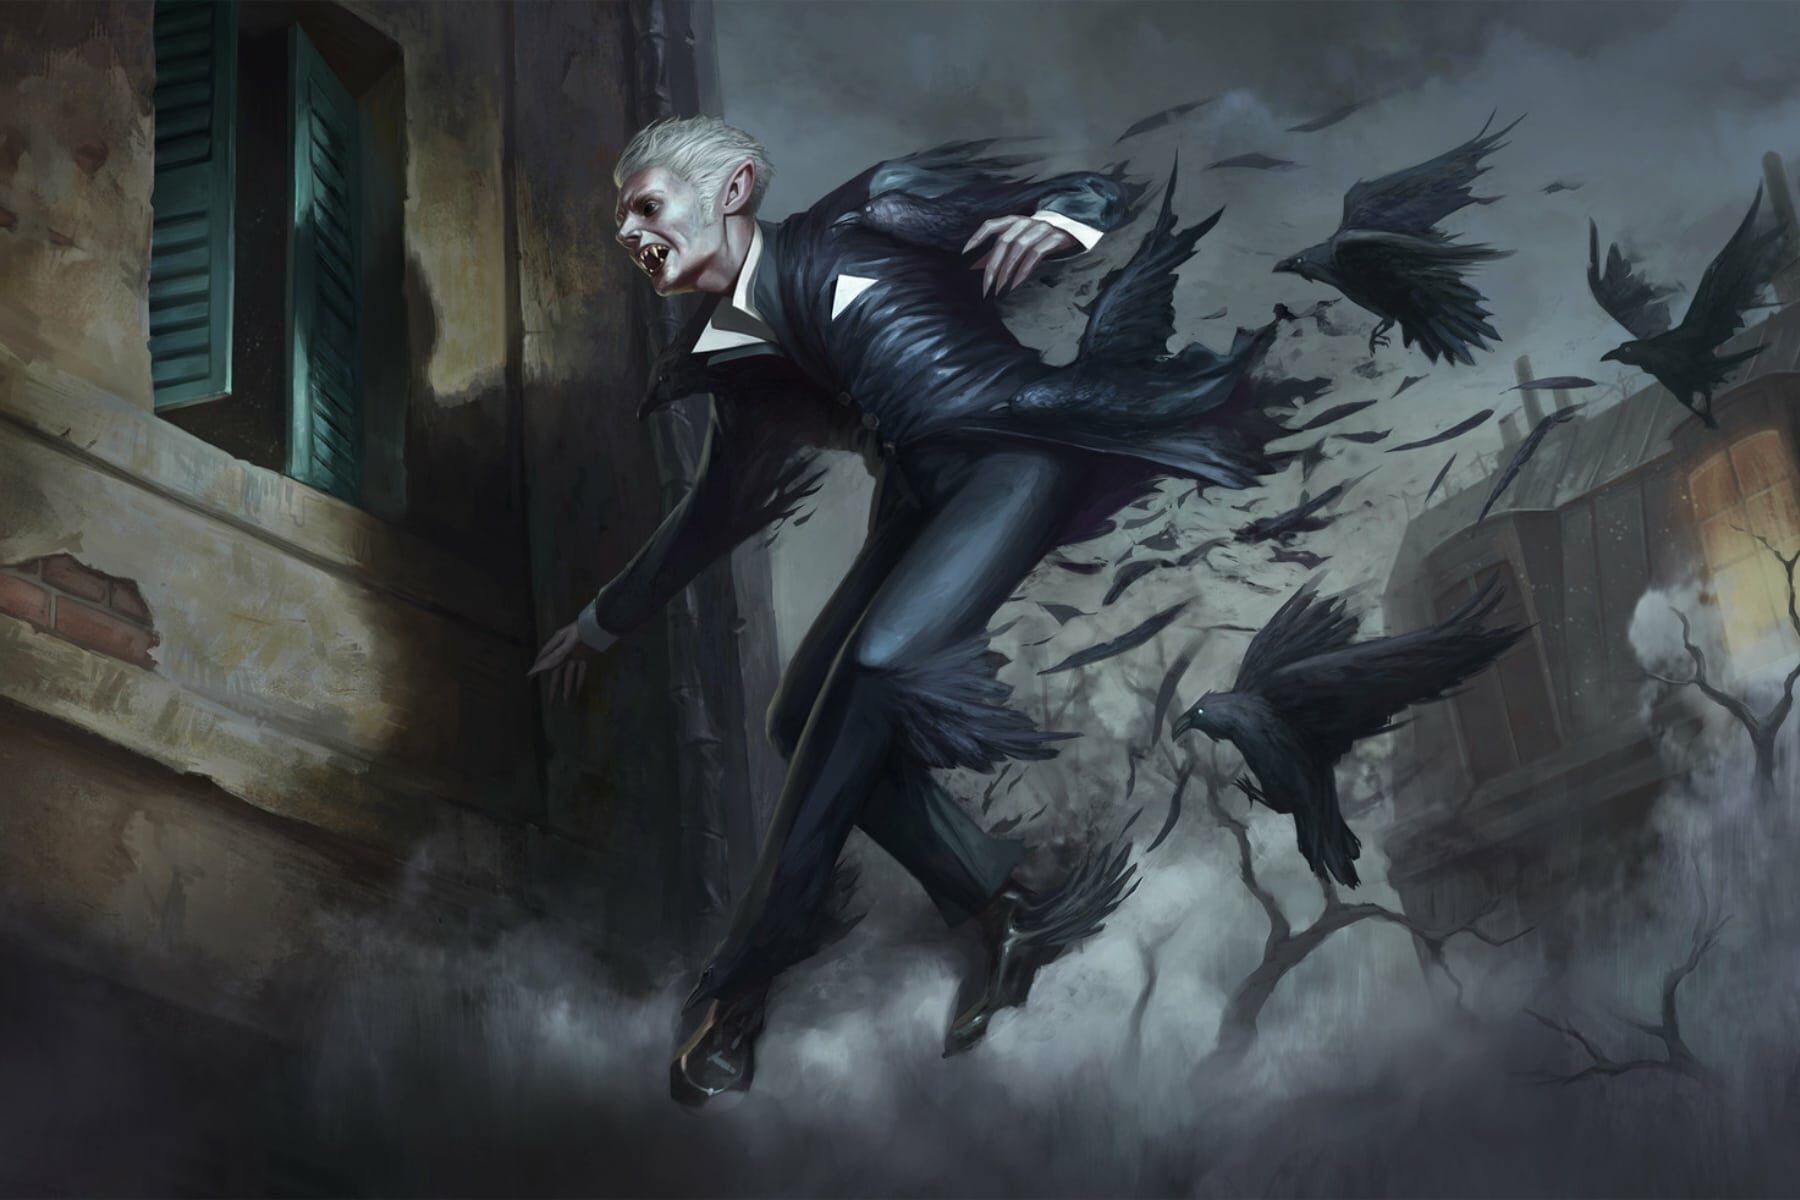 The Monstrous Other and Virtual Vampires Transgressions